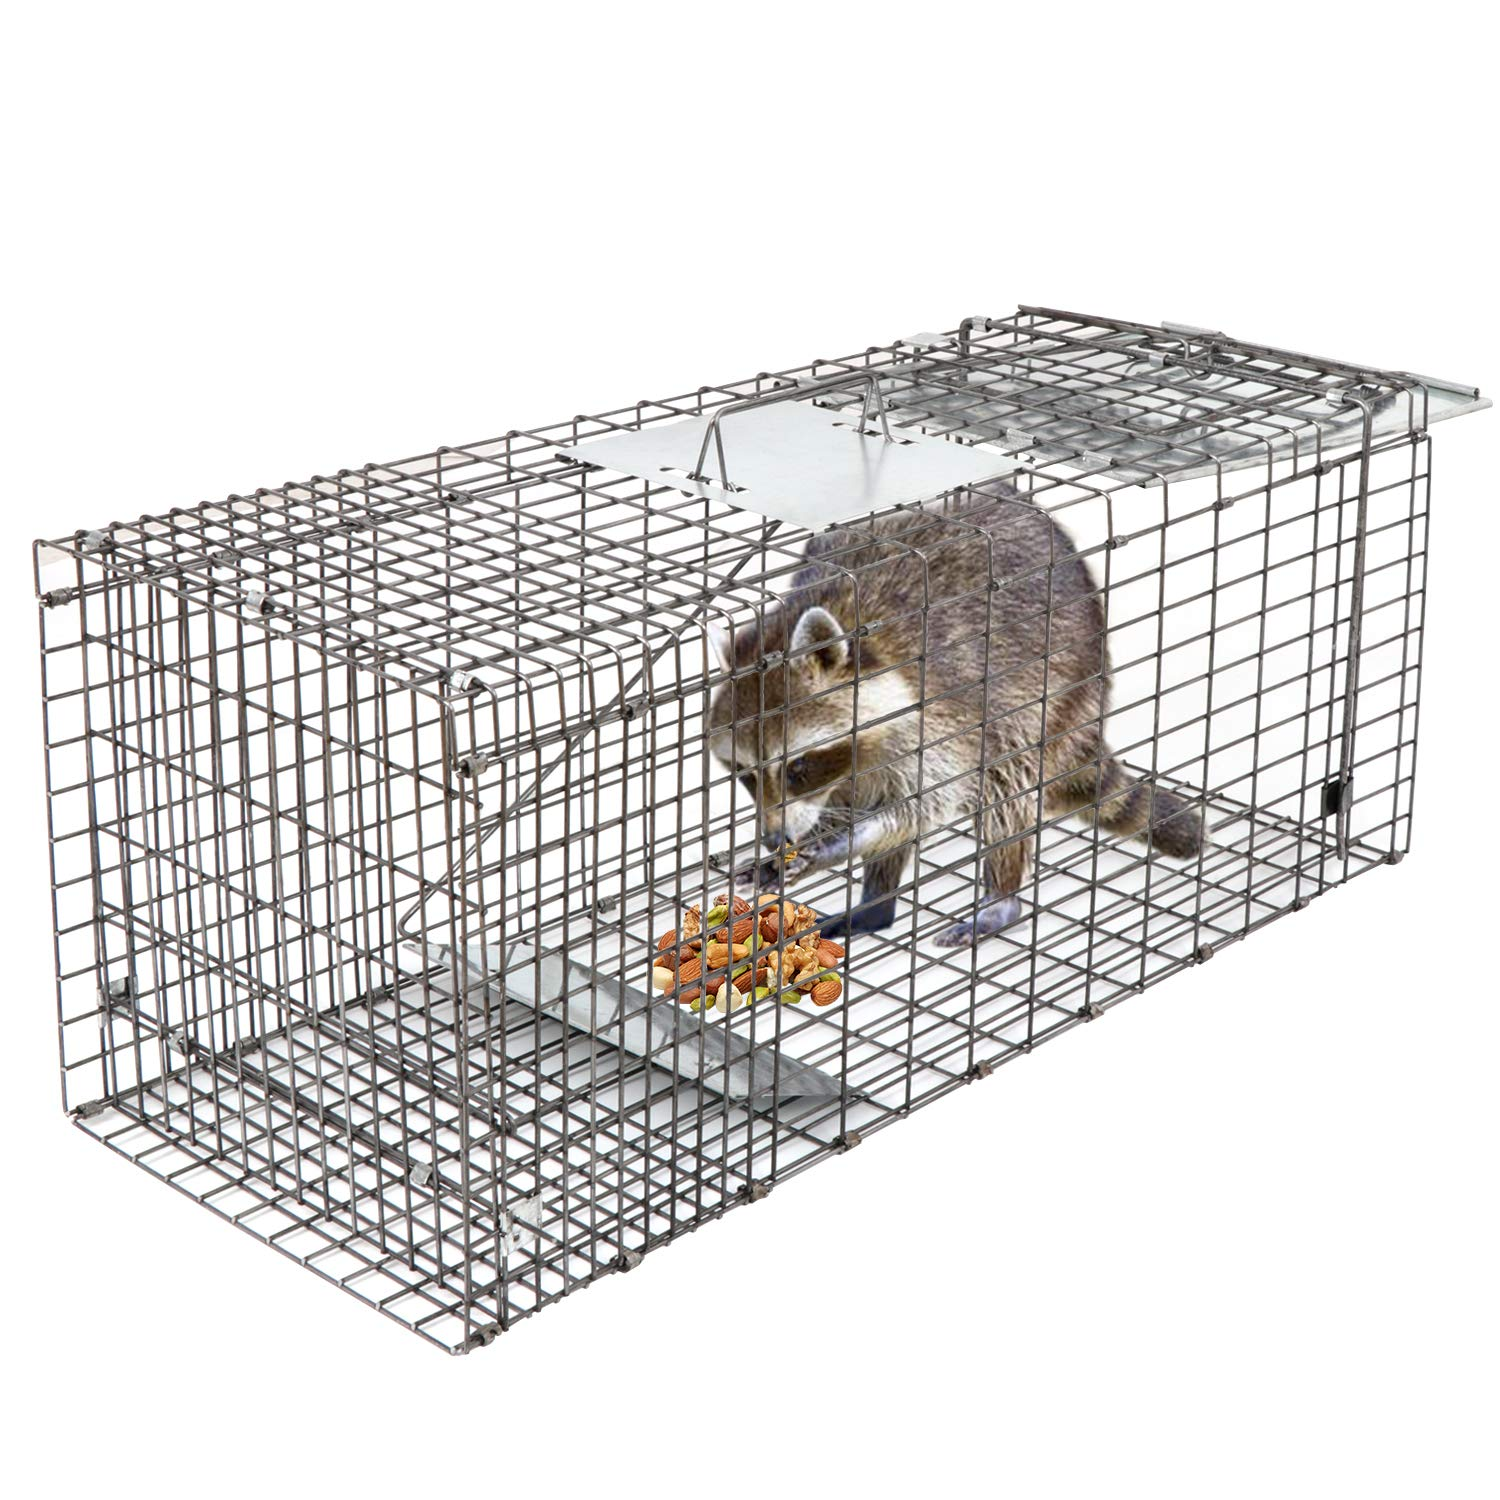 HomGarden Live Animal Trap 32''x12.5''x12'' Catch Release Humane Rodent Cage for Rabbits, Groundhog, Stray Cat, Squirrel, Raccoon, Mole, Gopher, Chicken, Opossum, Skunk & Chipmunks Nuisance Rodents